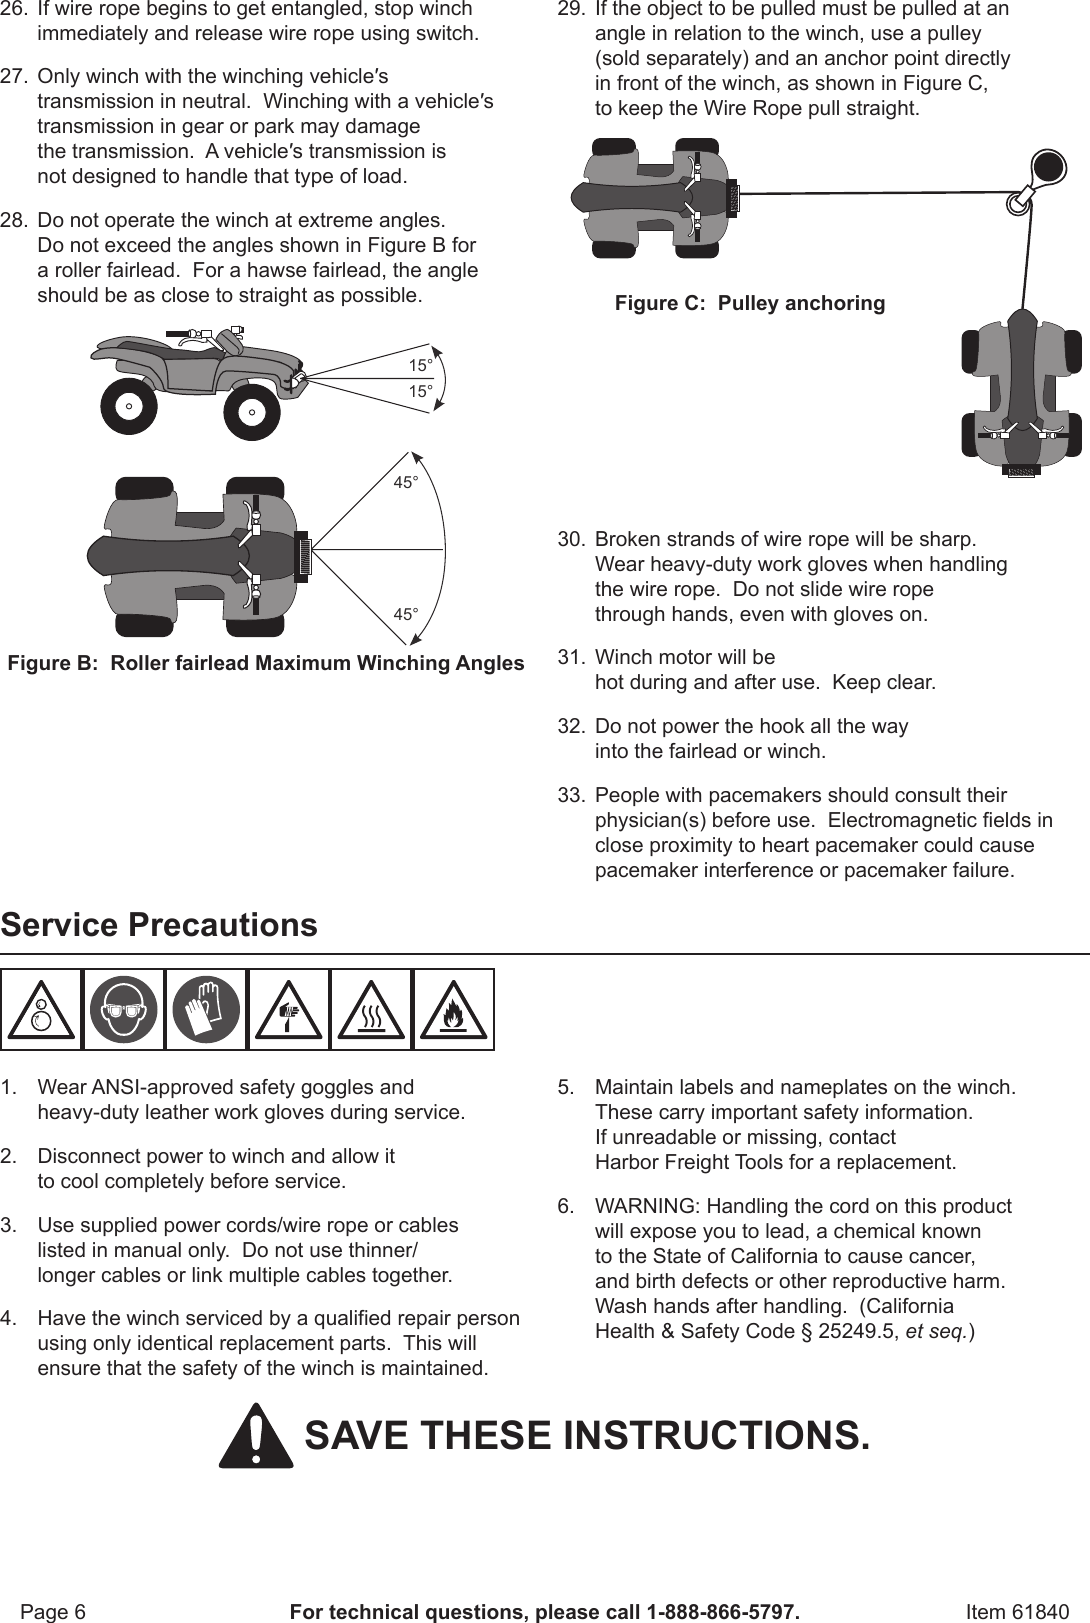 Manual For The 61840 2500 Lb  ATV/Utility Electric Winch